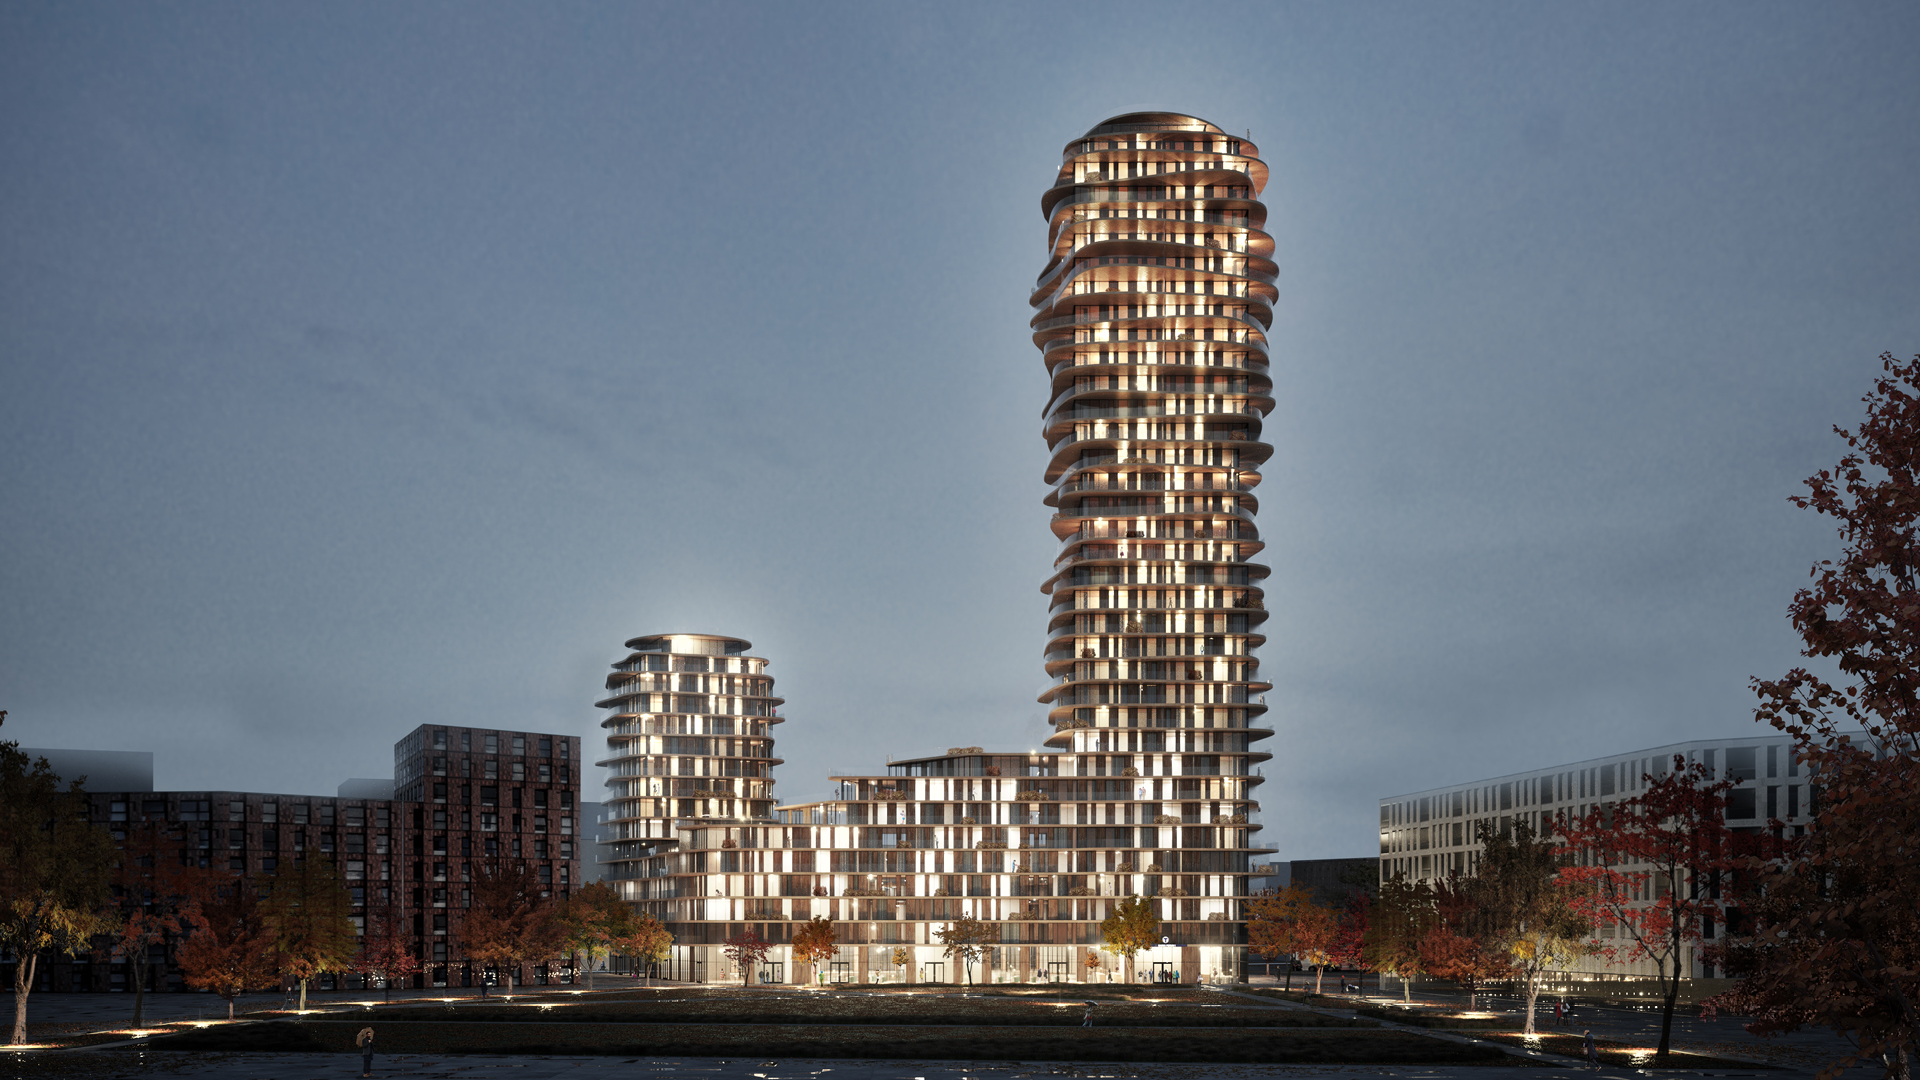 Discus – night view from the park | Discus| Belatchew Arkitekter| STIR